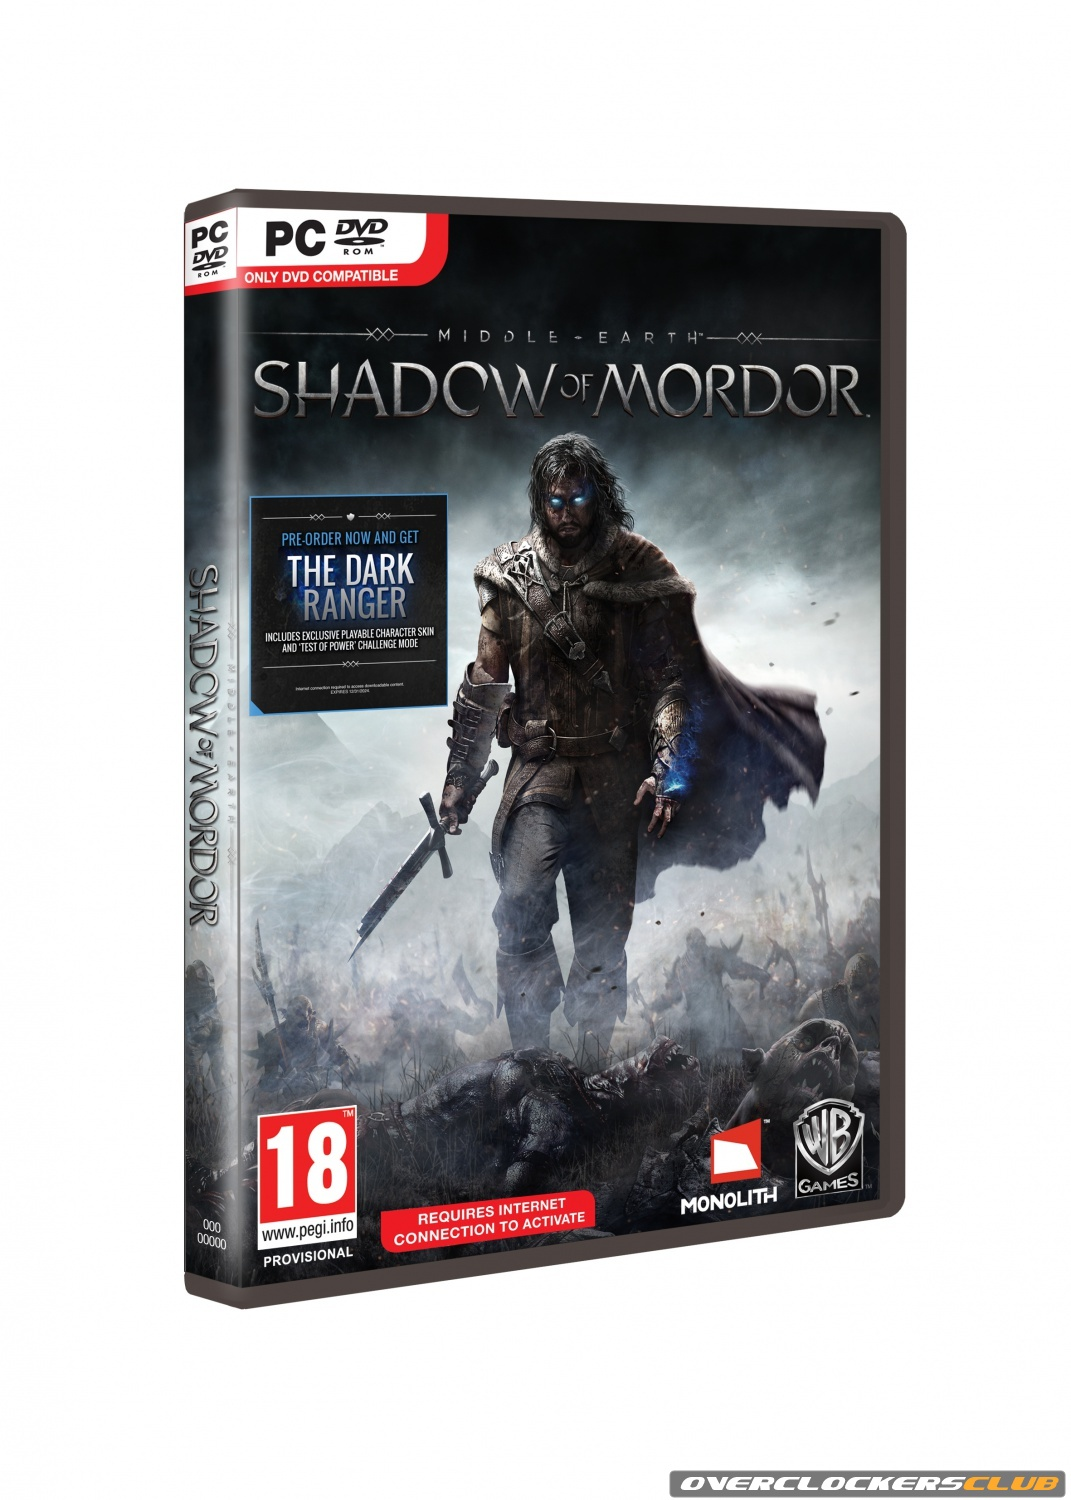 Middle-earth: Shadow of Mordor Releasing October 7; Story Trailer, Box Art, and Pre-order Bonus Revealed